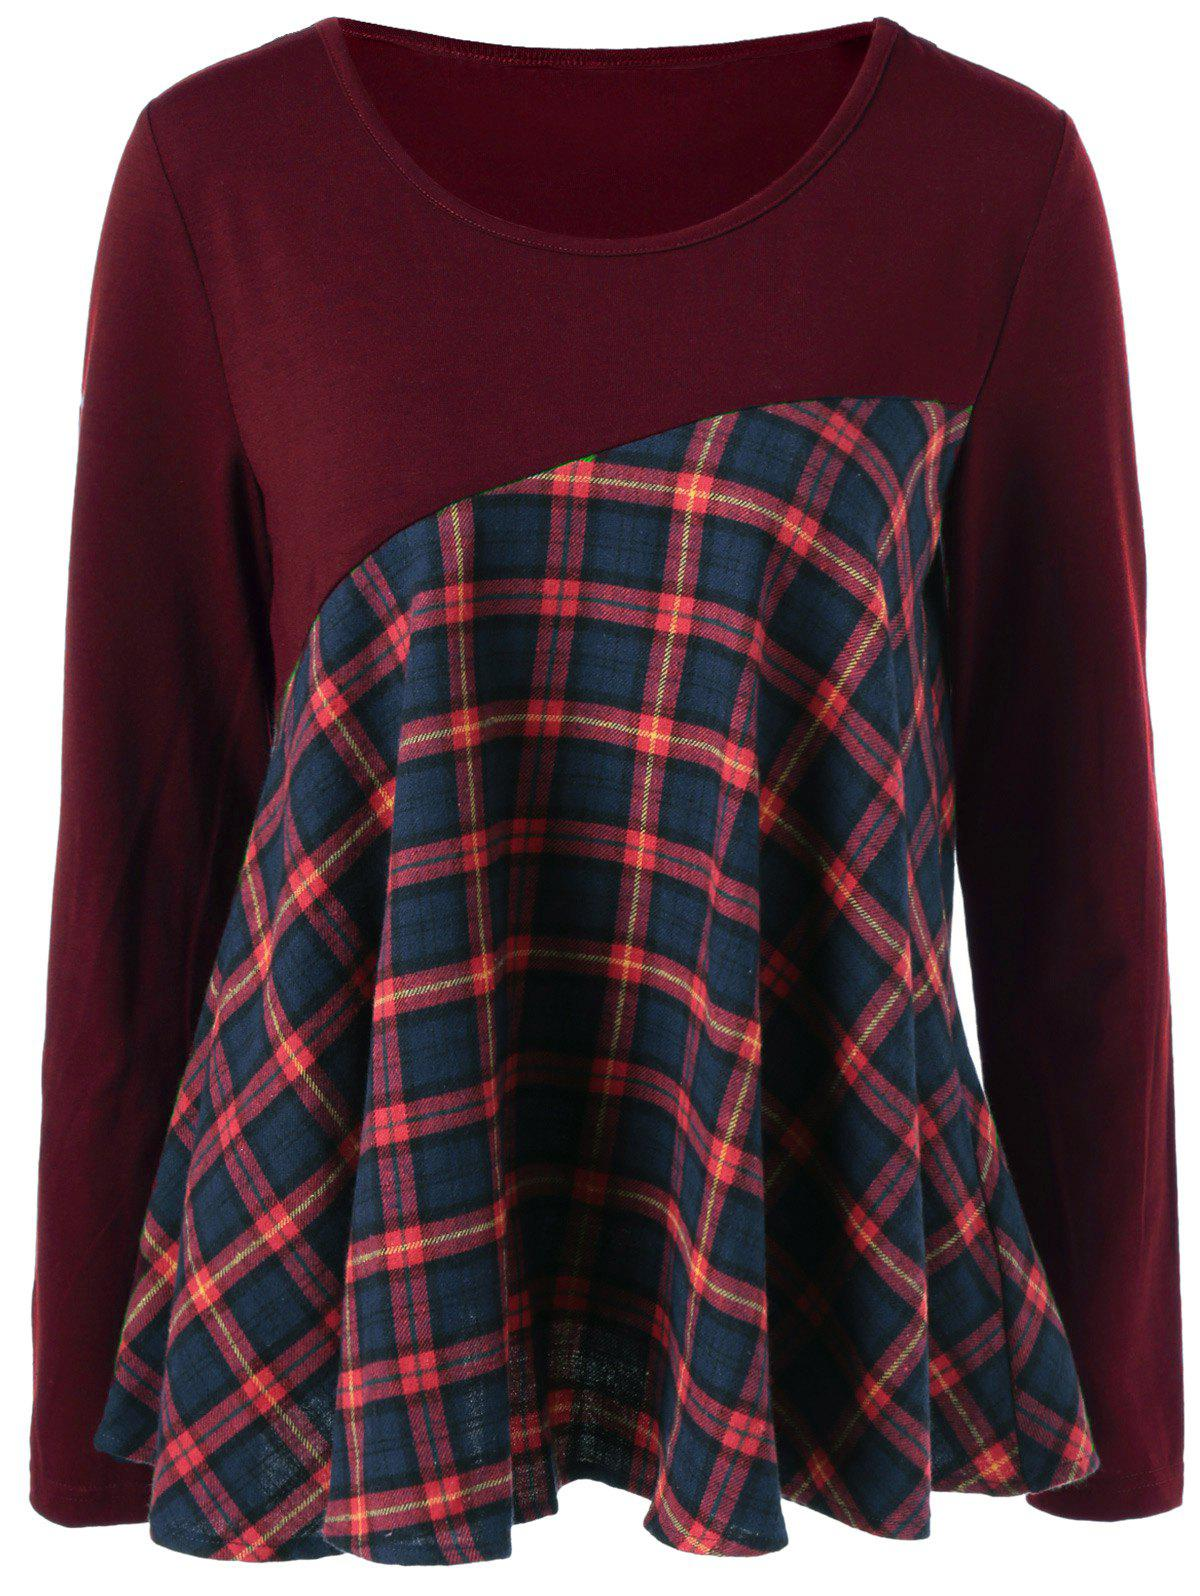 Plaid Trim Elbow Patch BlouseWOMEN<br><br>Size: XL; Color: BURGUNDY; Style: Casual; Material: Cotton Blends,Spandex; Shirt Length: Regular; Sleeve Length: Full; Collar: Scoop Neck; Pattern Type: Plaid; Season: Fall,Spring,Summer; Weight: 0.390kg; Package Contents: 1 x Blouse;